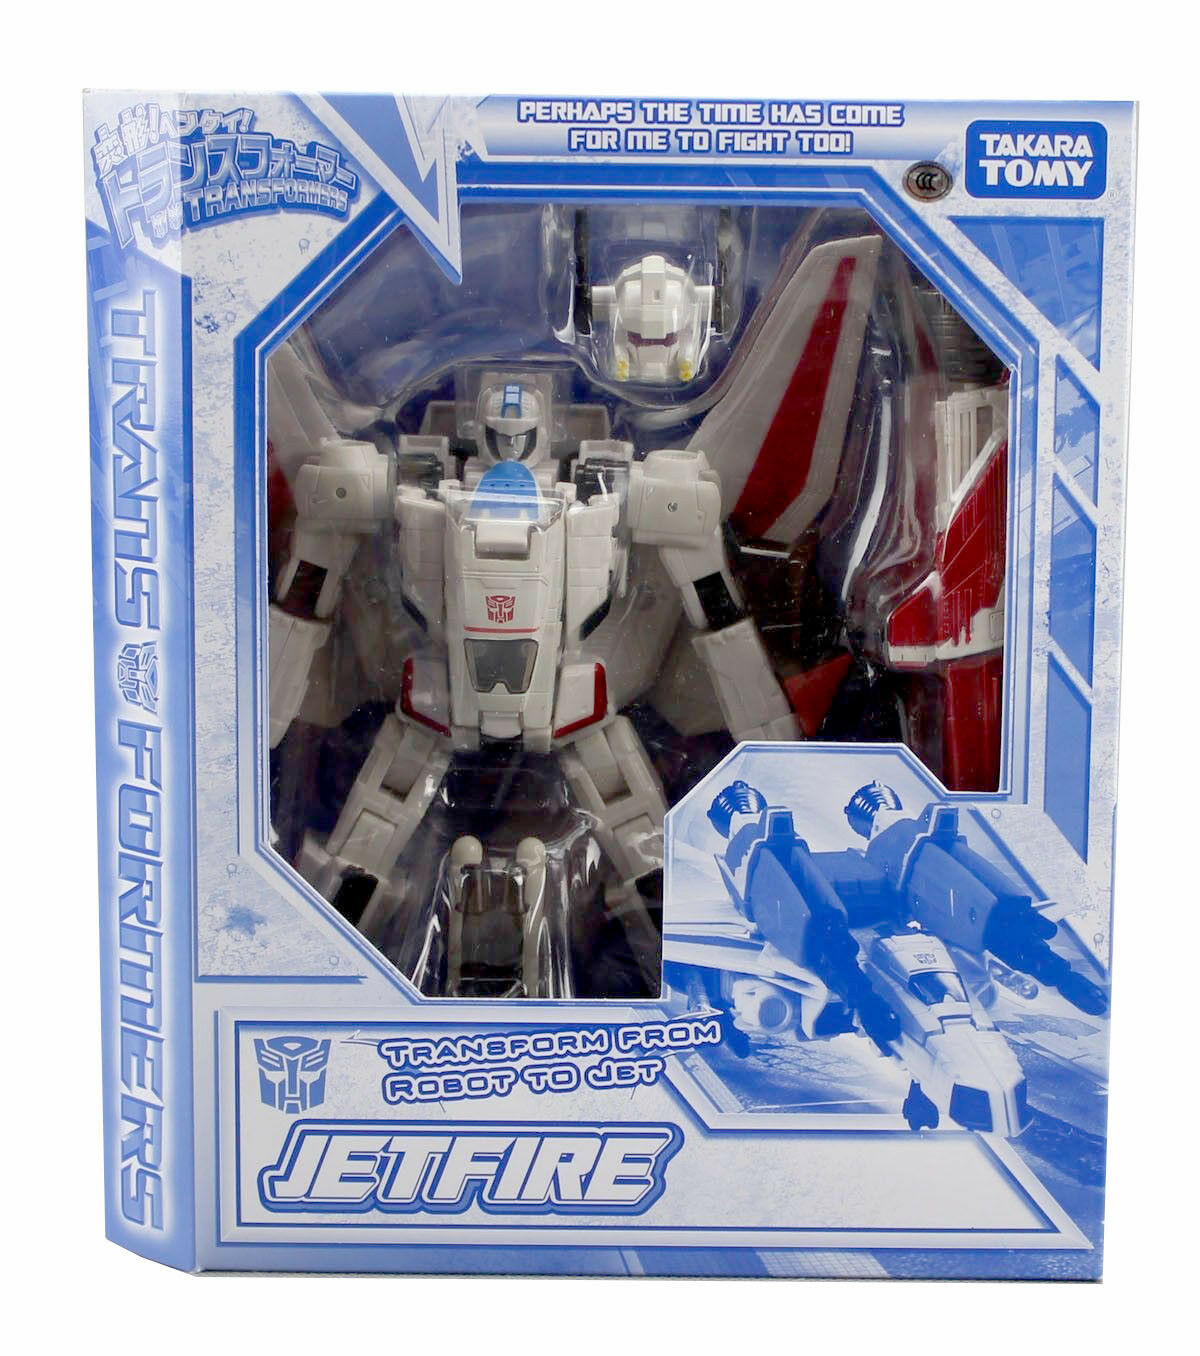 Transformers Takara CHUG Henkei Jetfire Convention exclusive version MISB